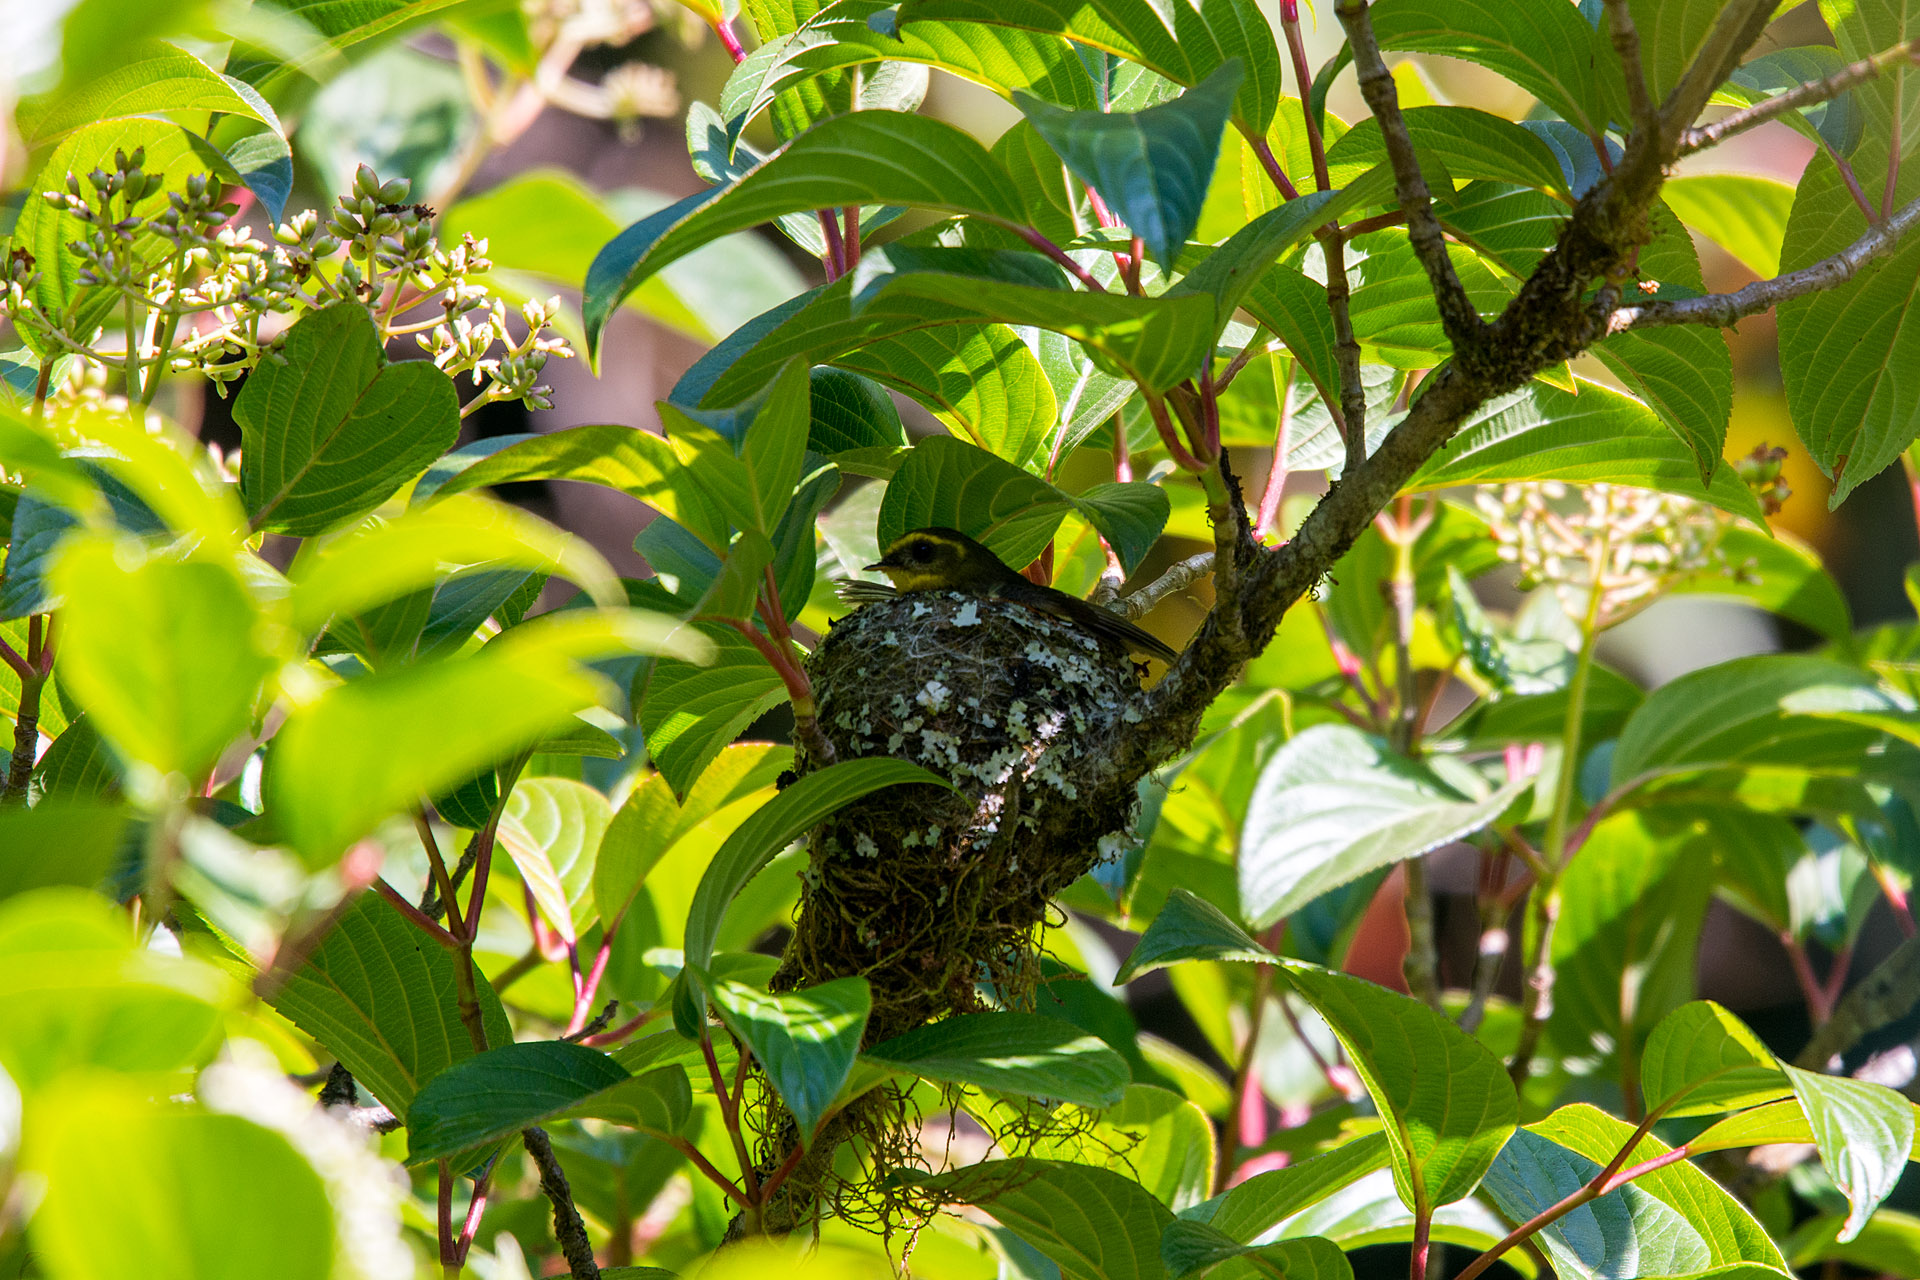 Yellow-bellied fantail nest